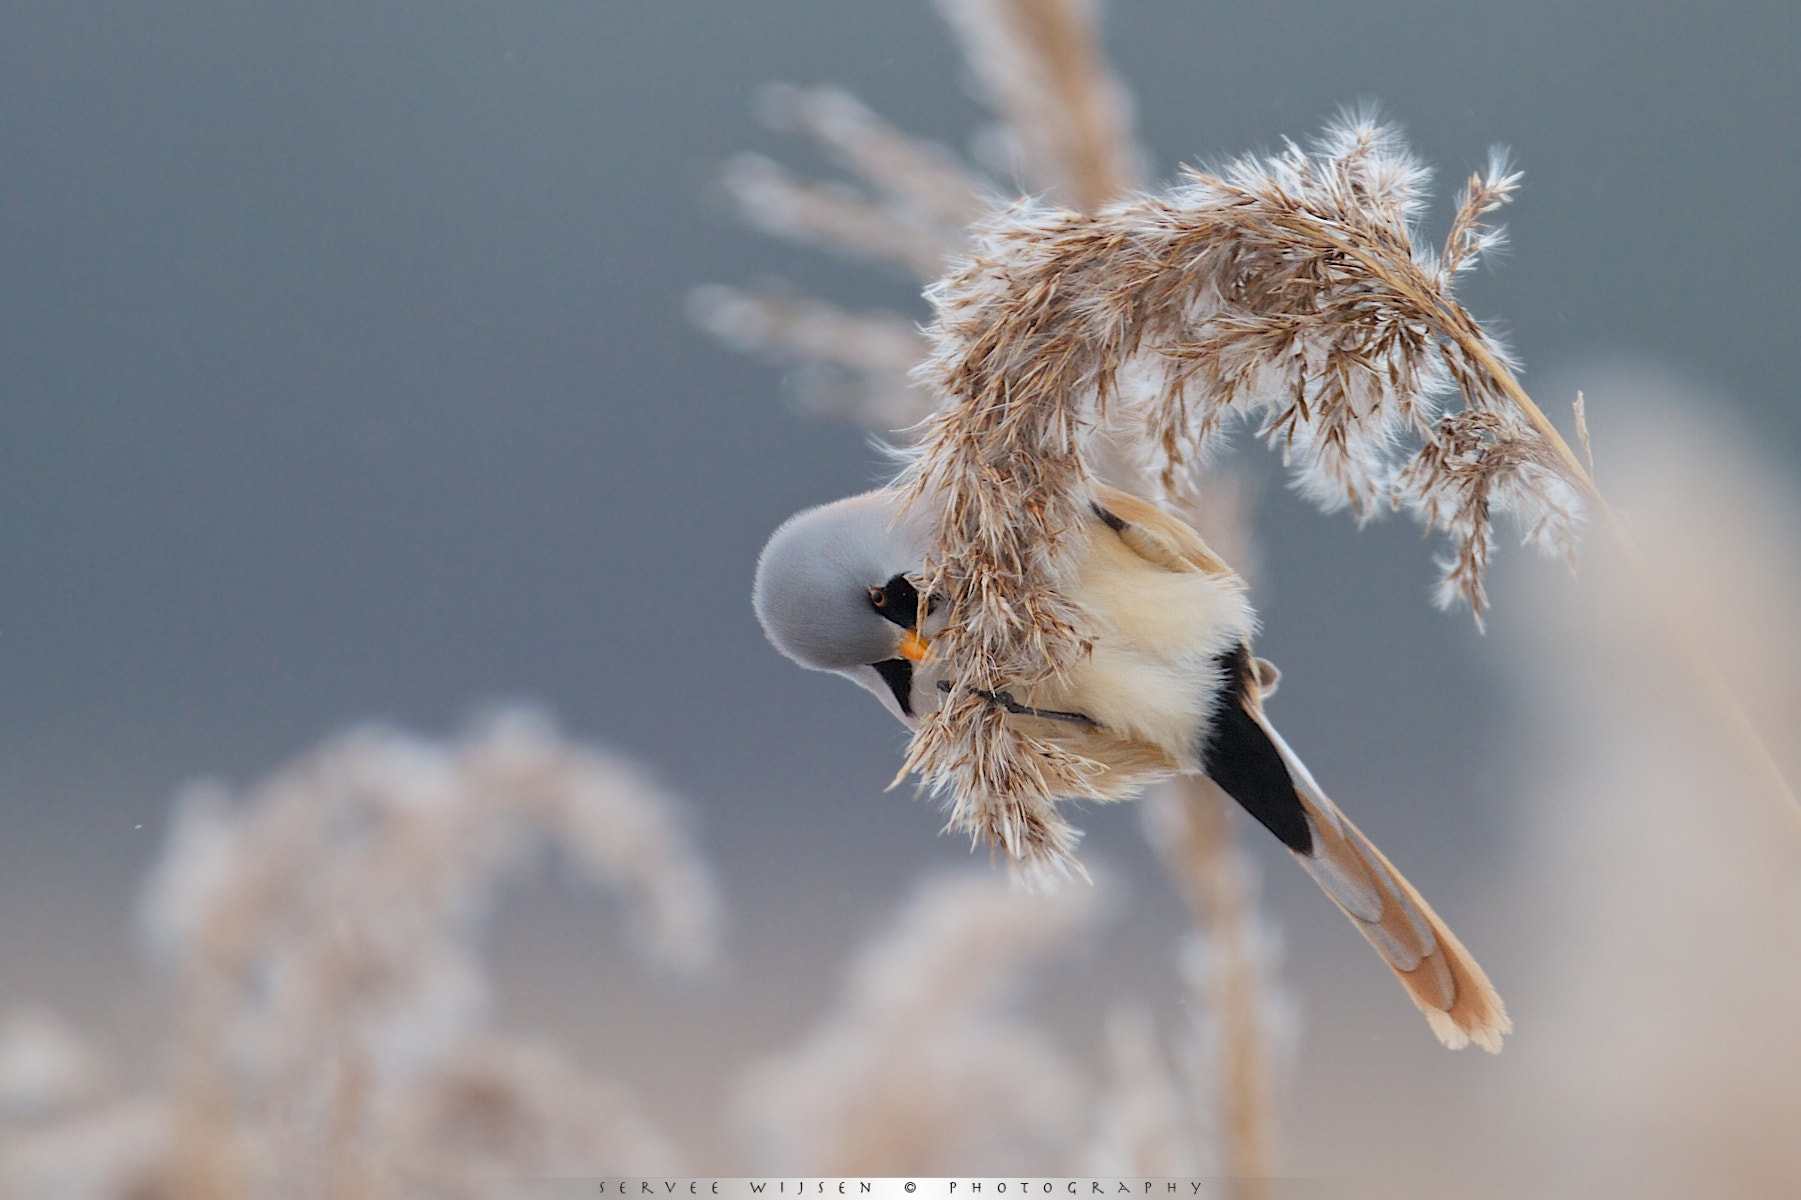 Photograph Hangin' On... by Servee Wijsen on 500px